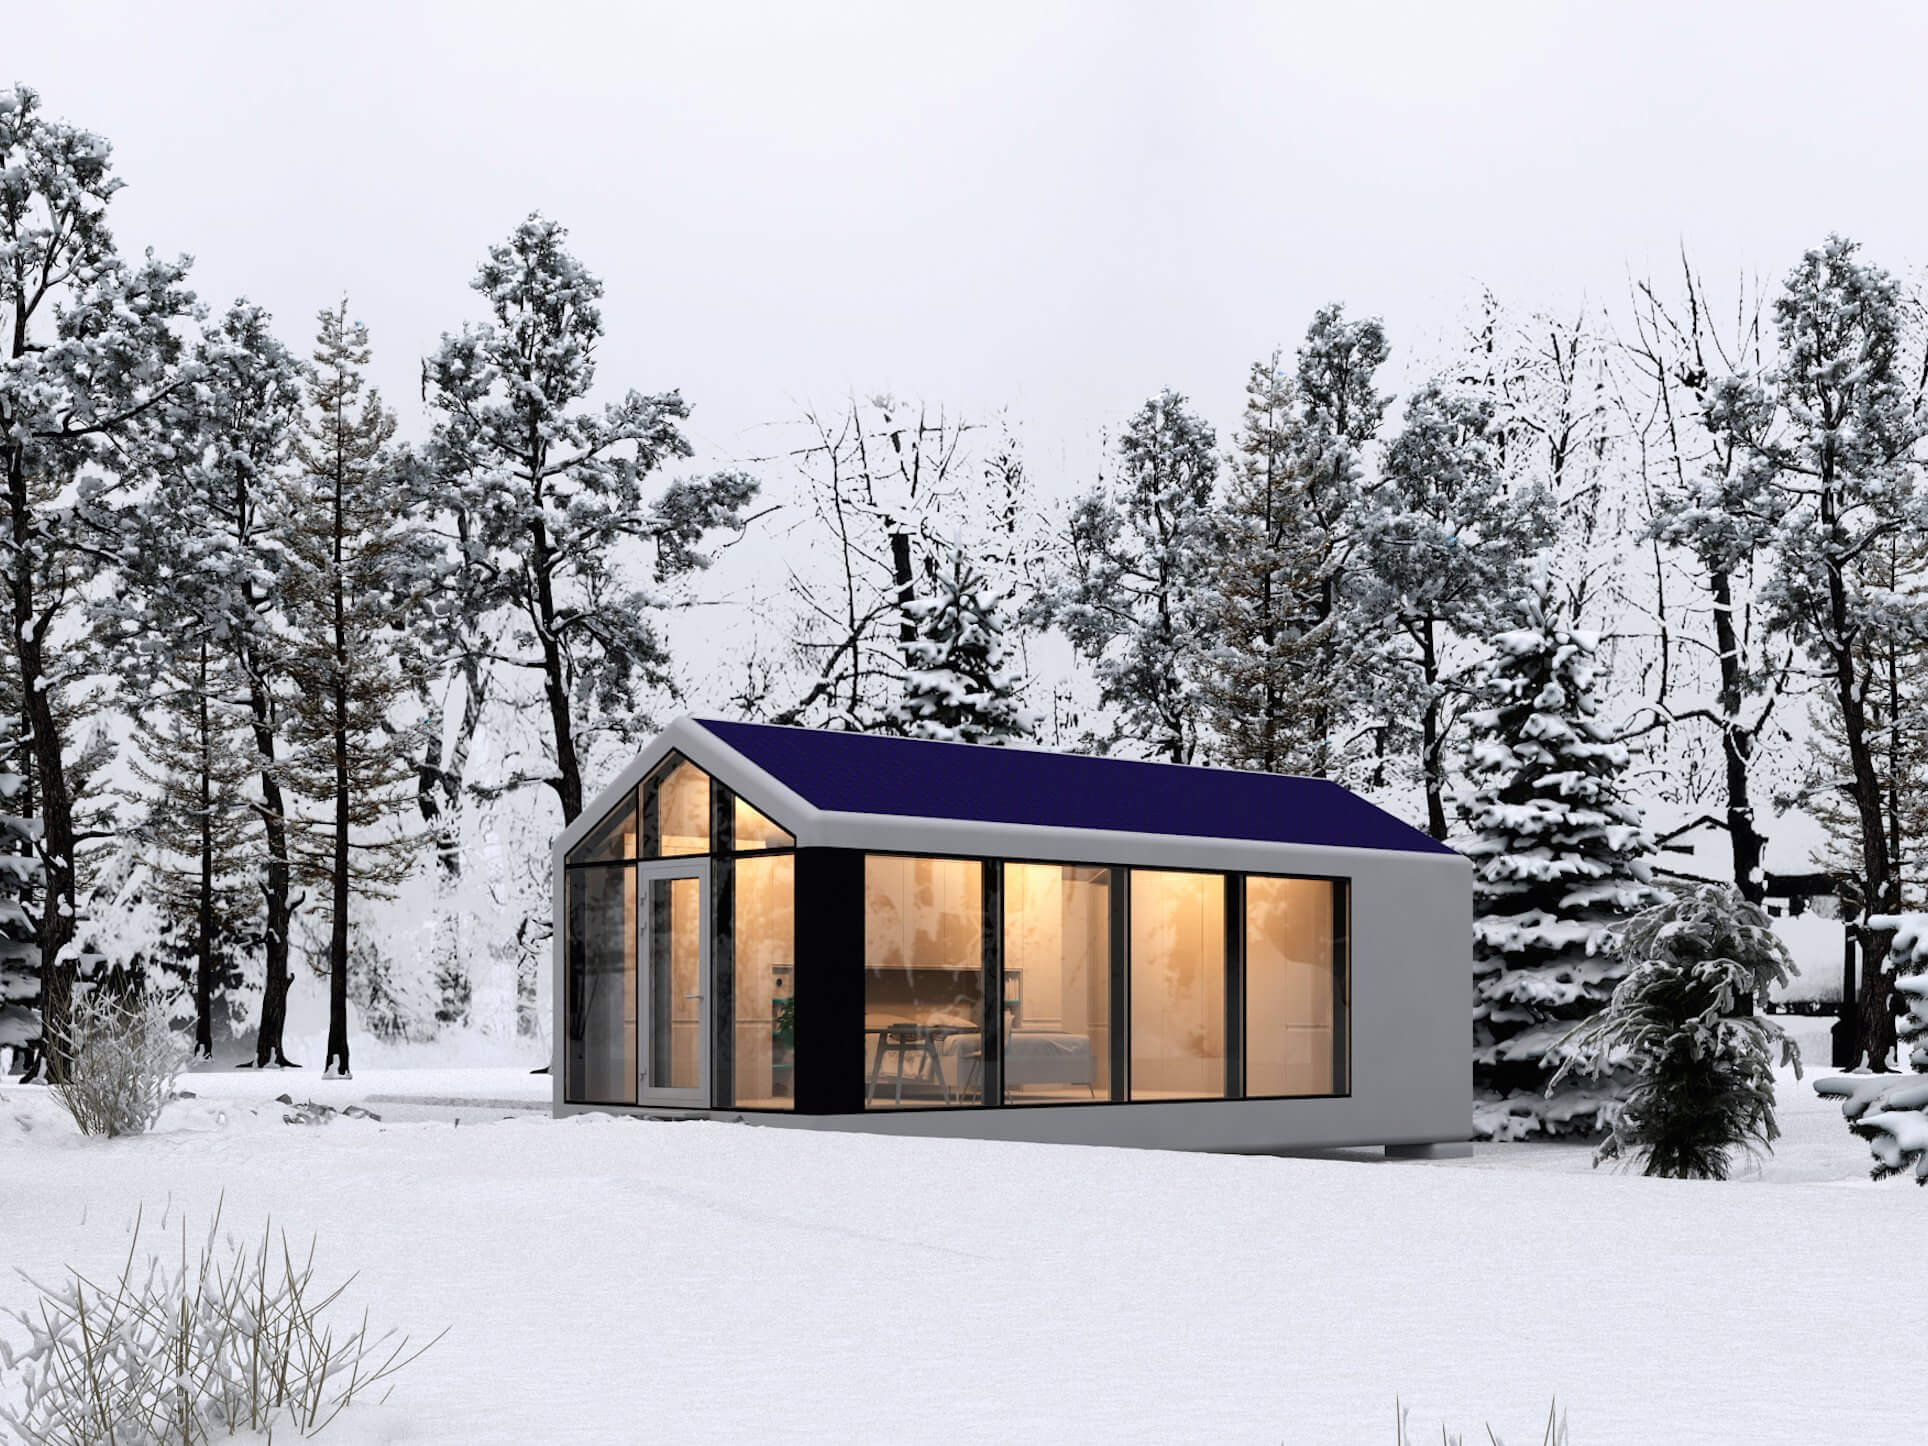 Take a Look Inside This Autonomous Home That Can Be 3D